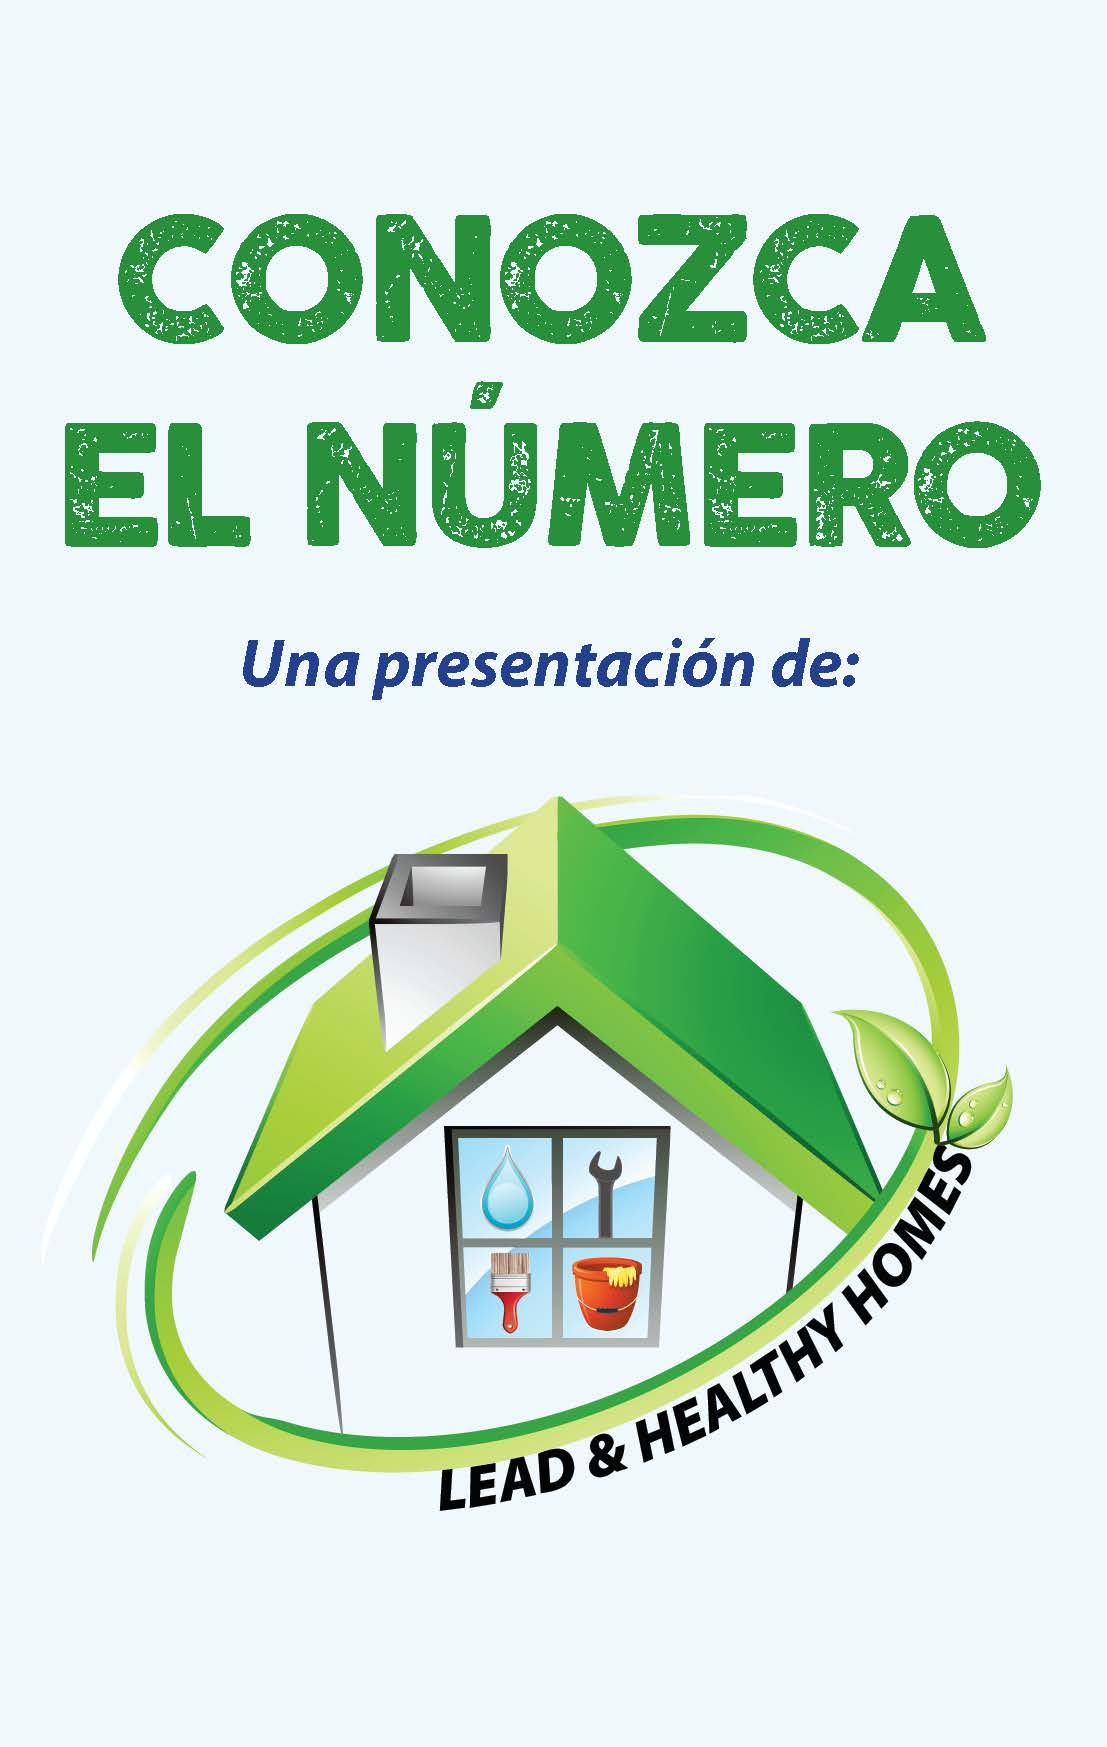 Know The Number - Blood Lead Level Card (Spanish)